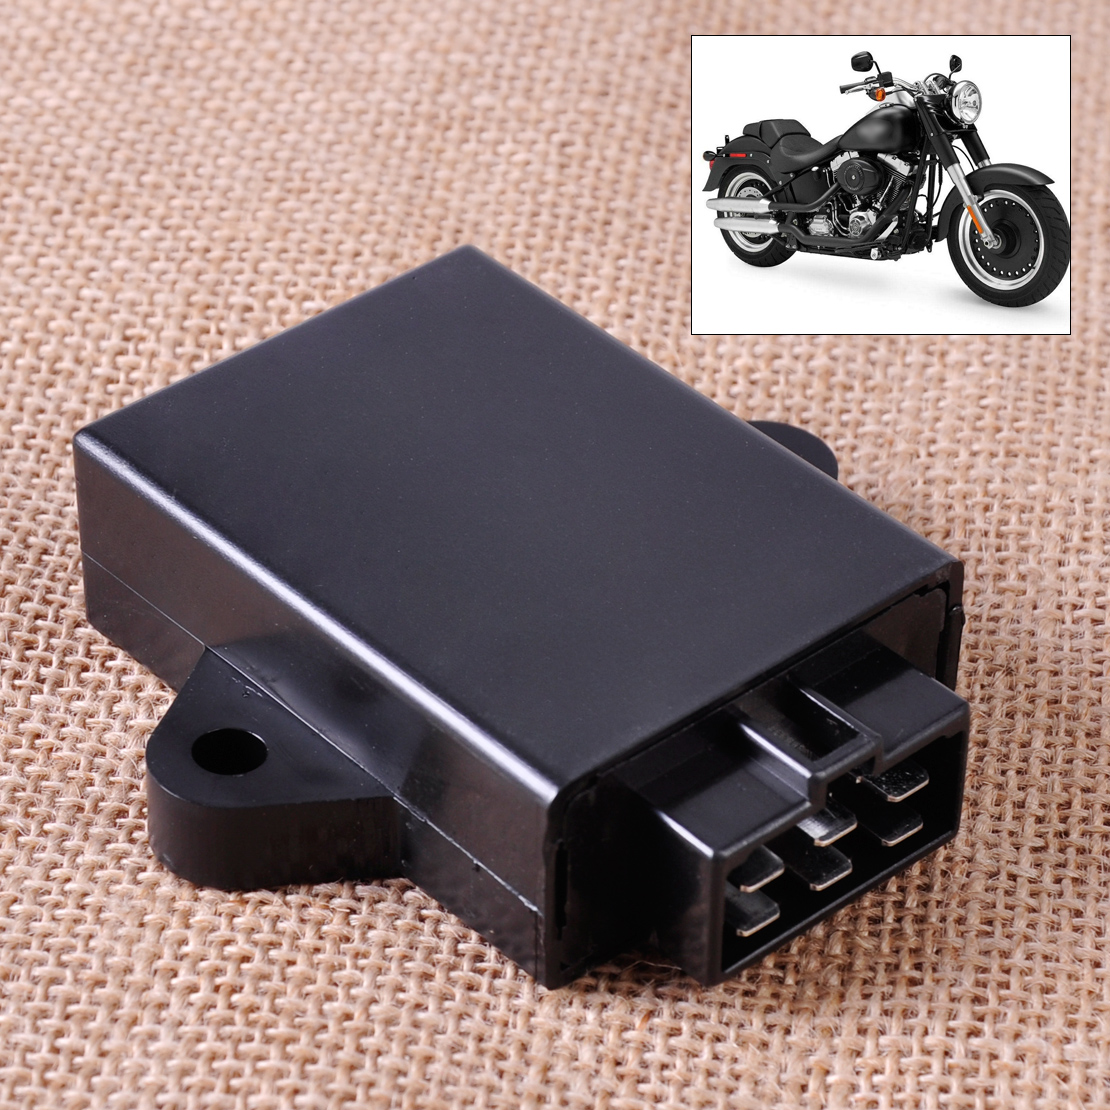 CITALL Motorcycle 12V <font><b>DC</b></font> 6Pin Control Module <font><b>CDI</b></font> Module Box <font><b>Unit</b></font> Digital <font><b>Ignition</b></font> fit <font><b>for</b></font> Suzuki GN250 Chopper